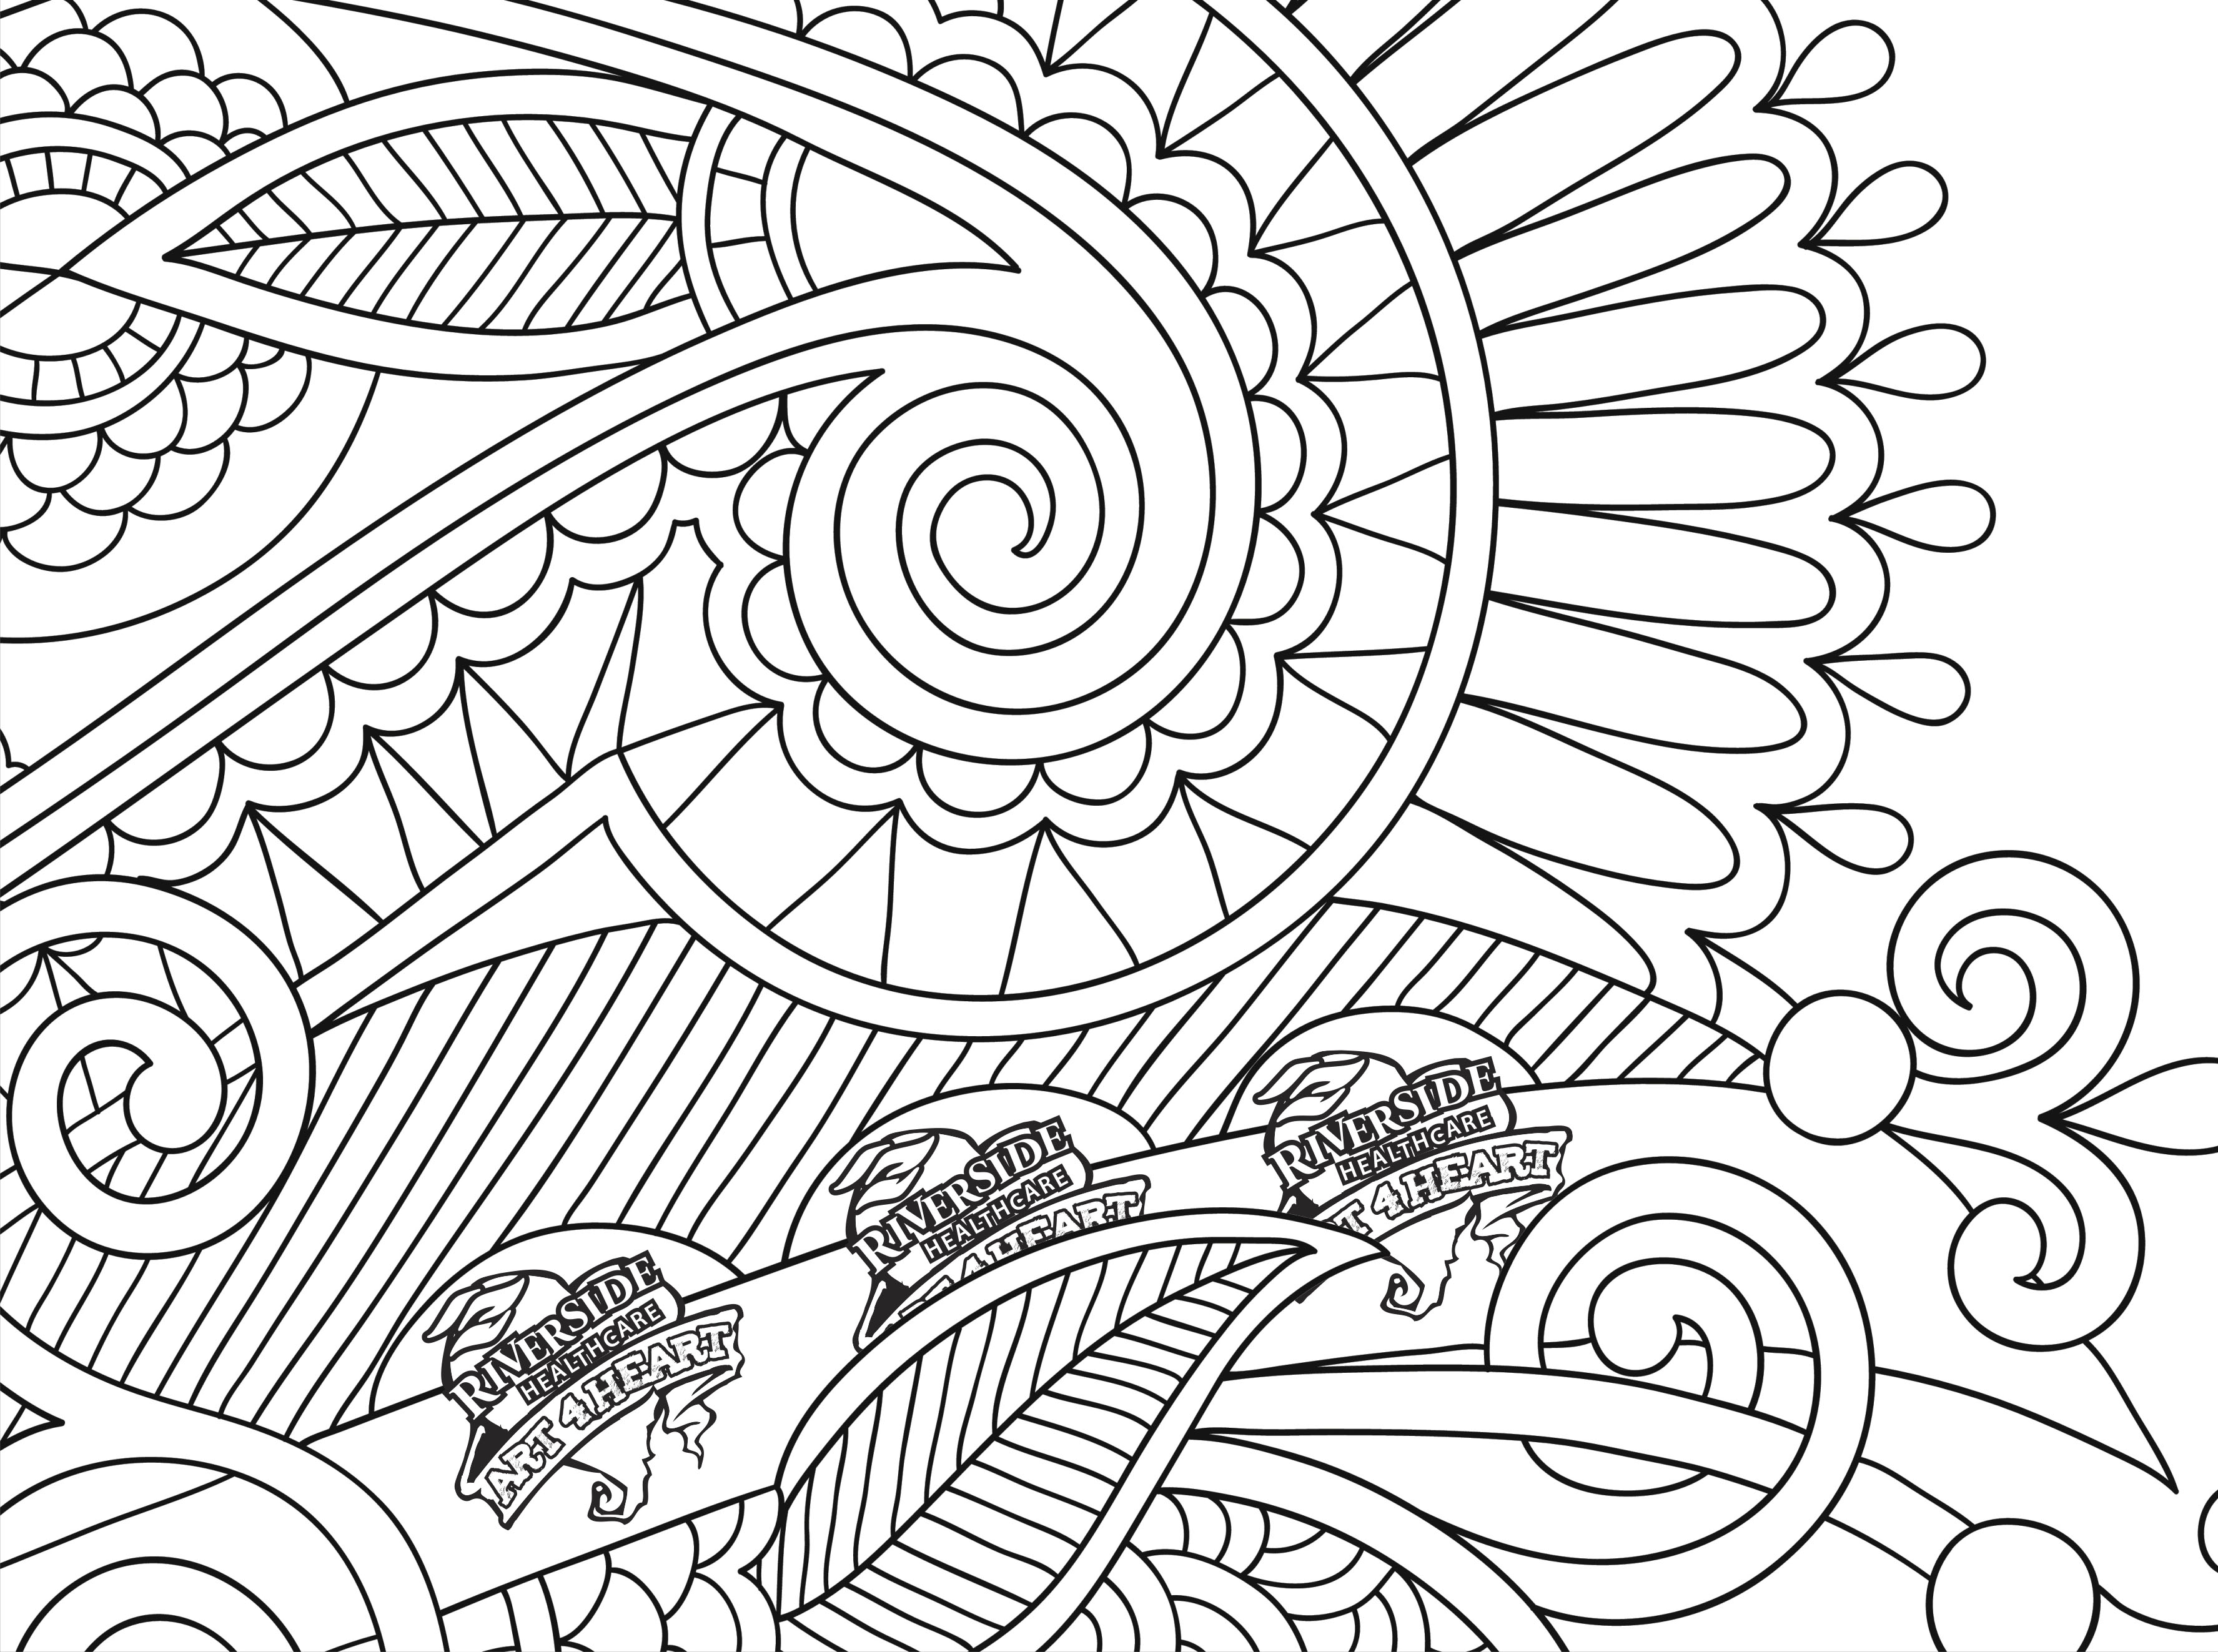 coloring art pages printable coloring pages healthcurrents coloring art pages